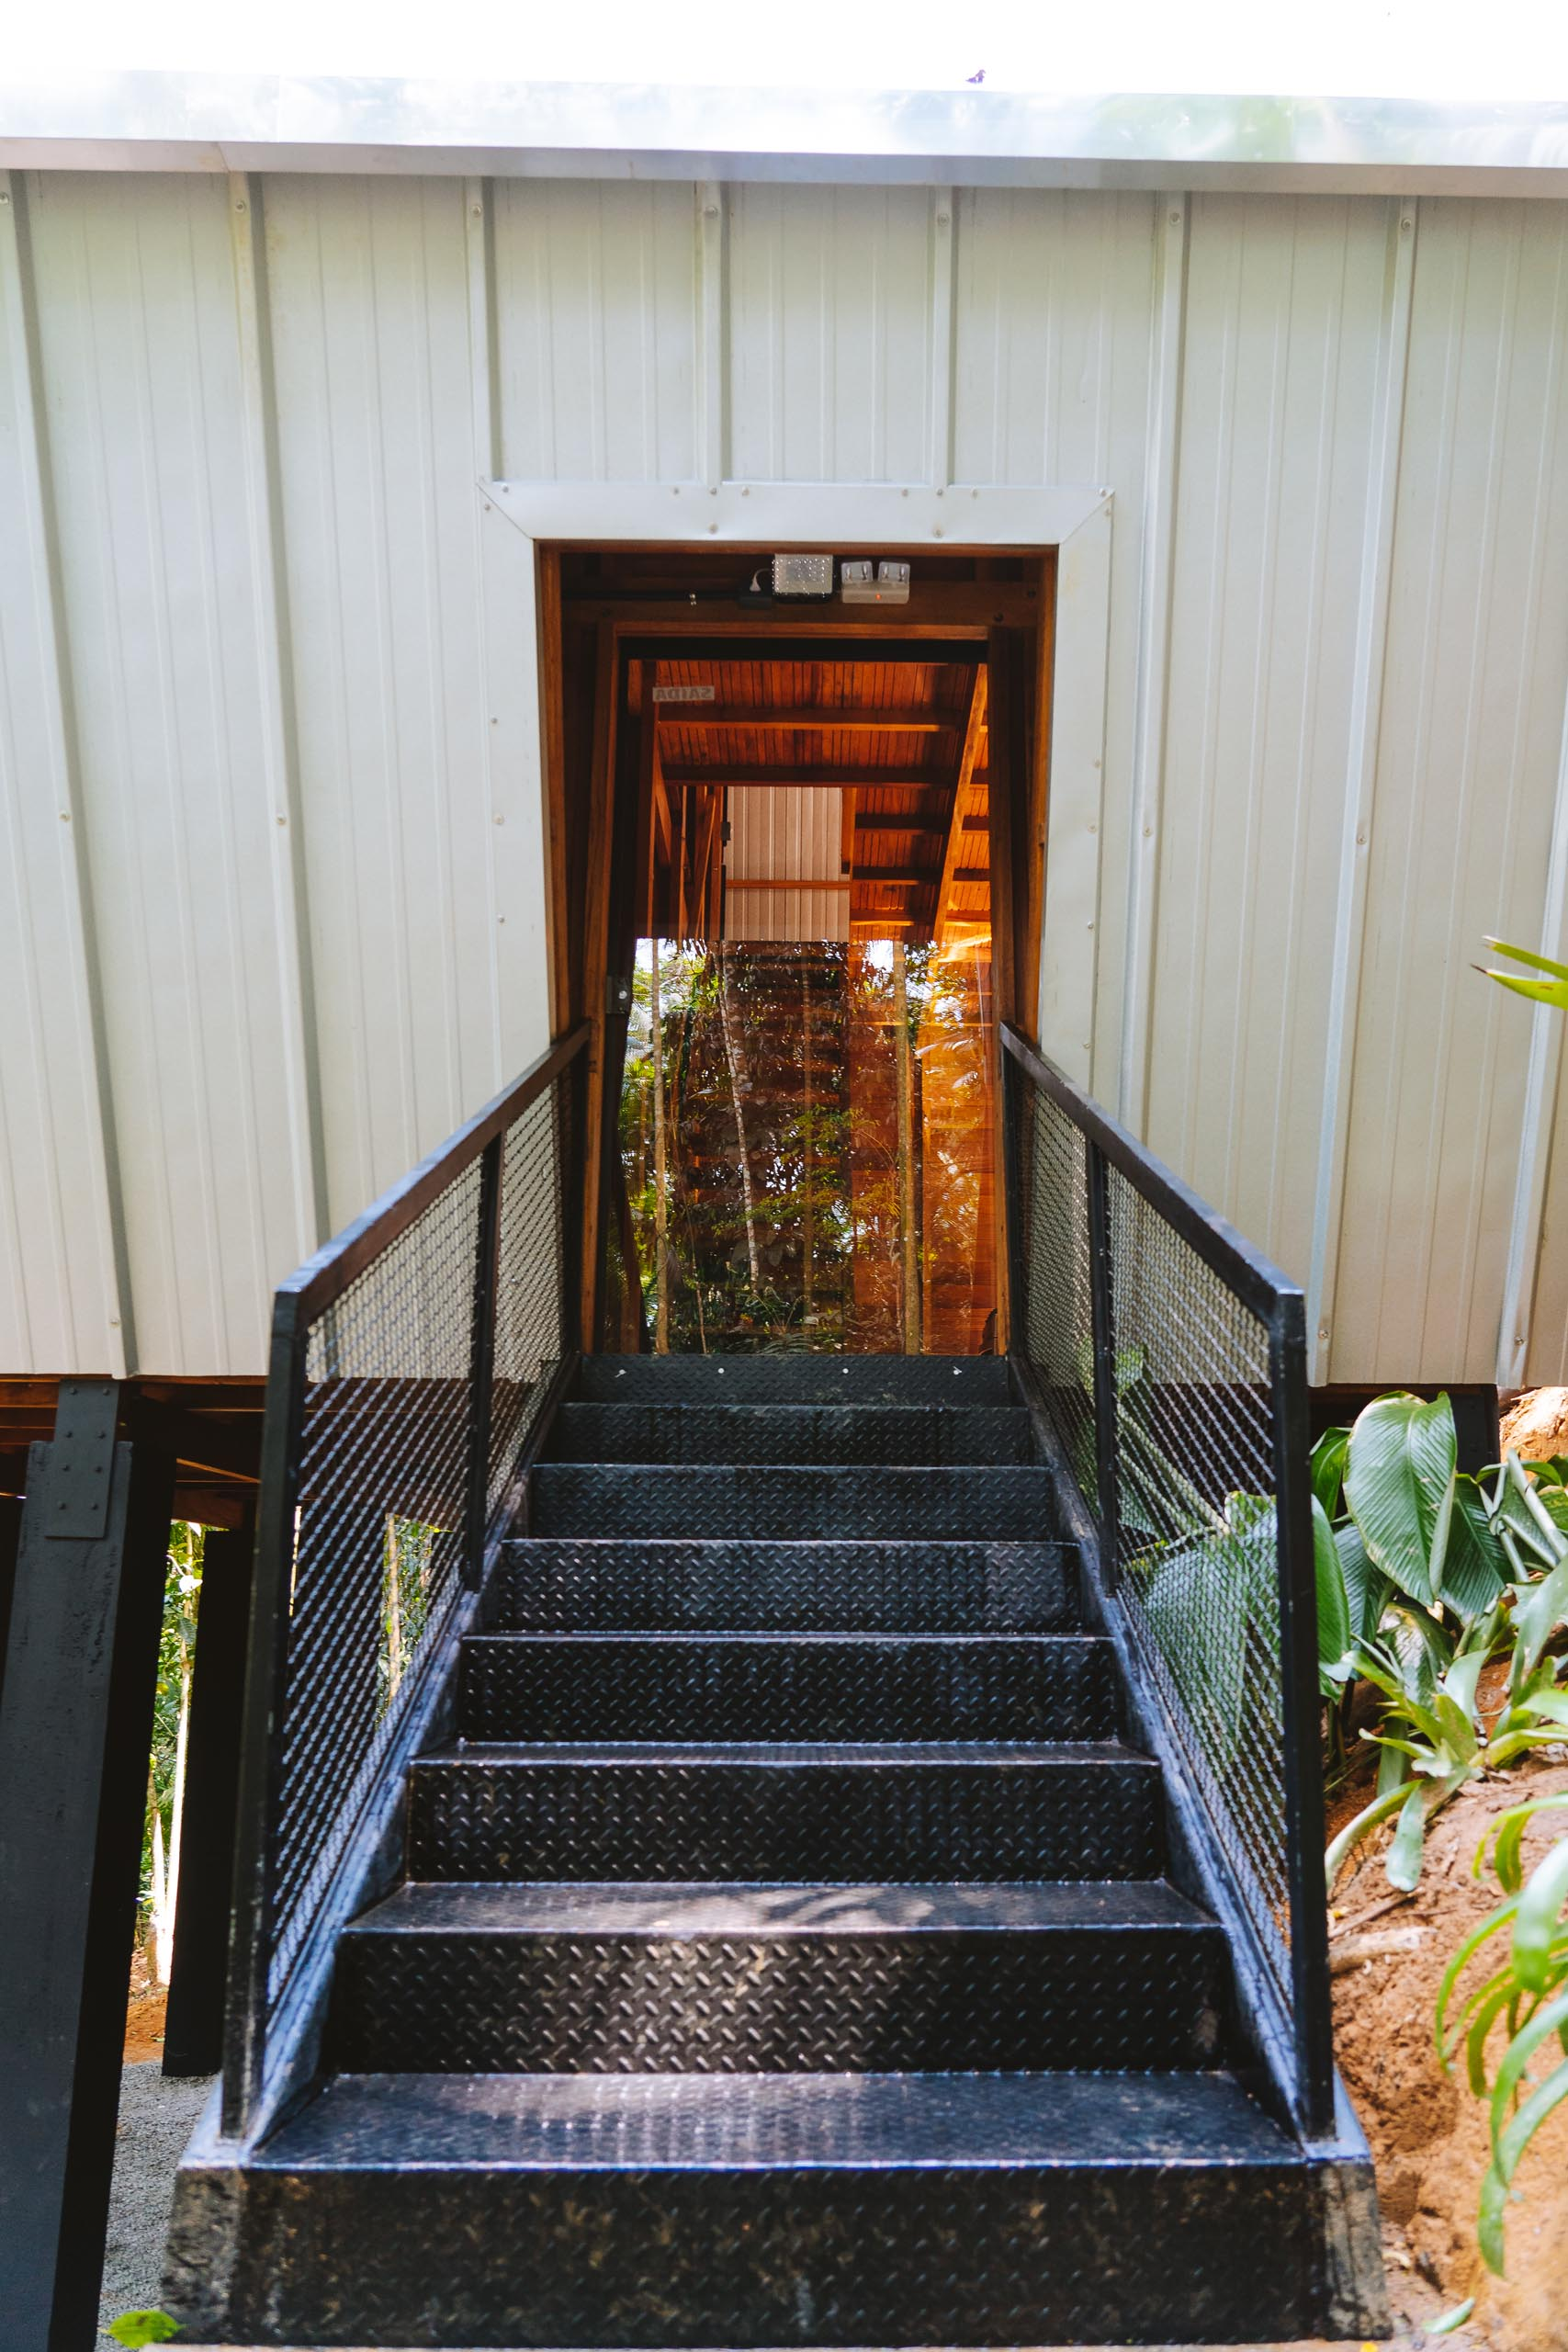 Black metal stairs and handrails provide entry to a raised A-frame cabin.